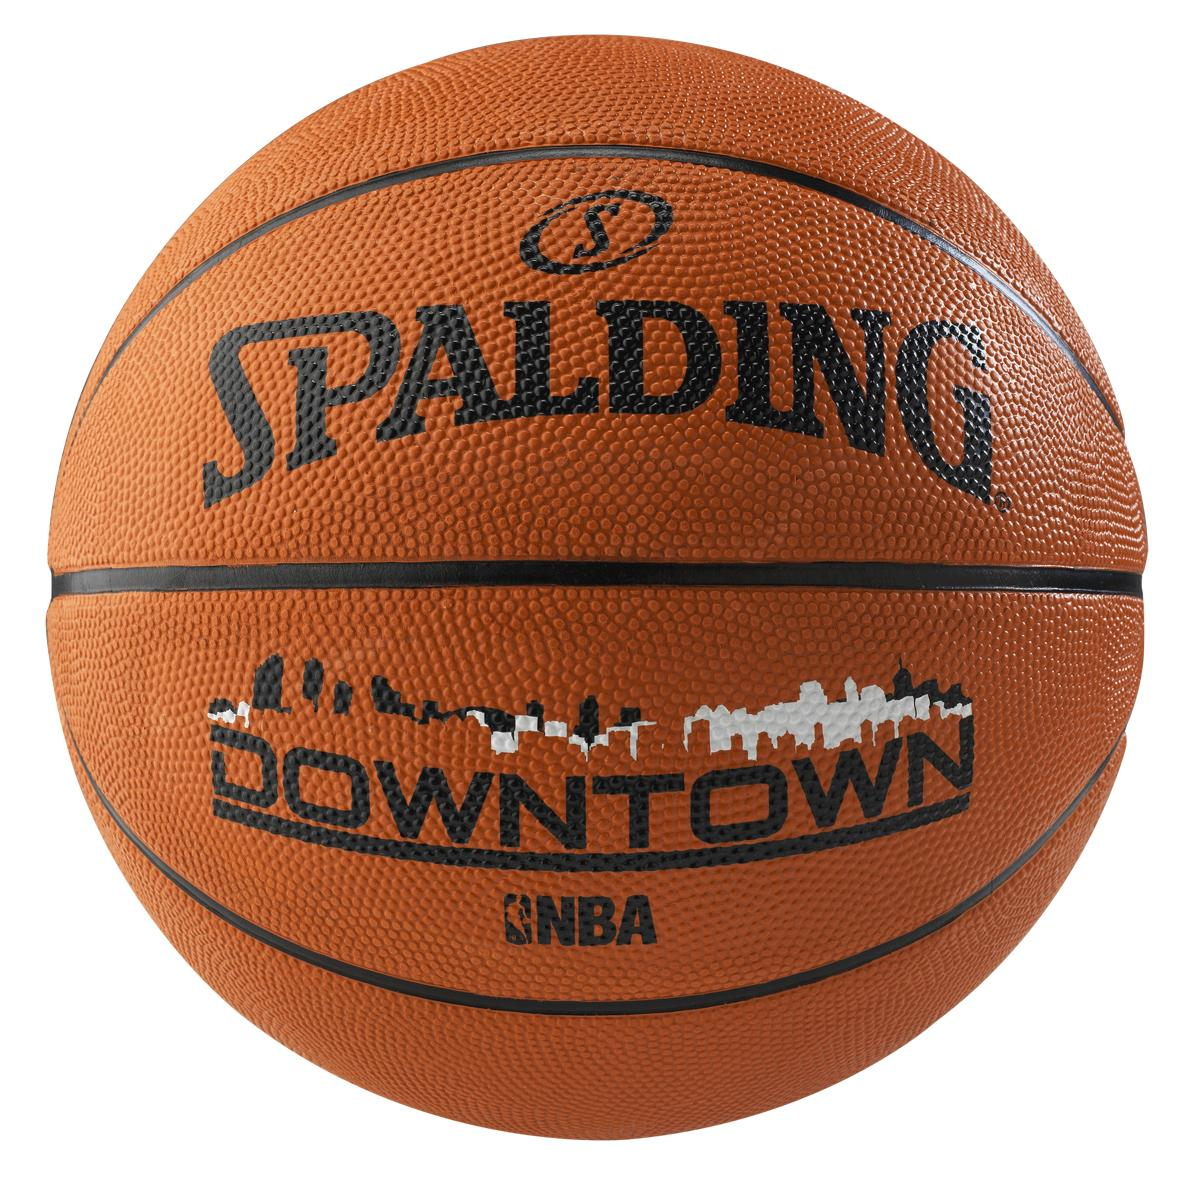 Spalding Basketball Philippines - Spalding Basketball Game for sale ... 5eef6888ce4b5